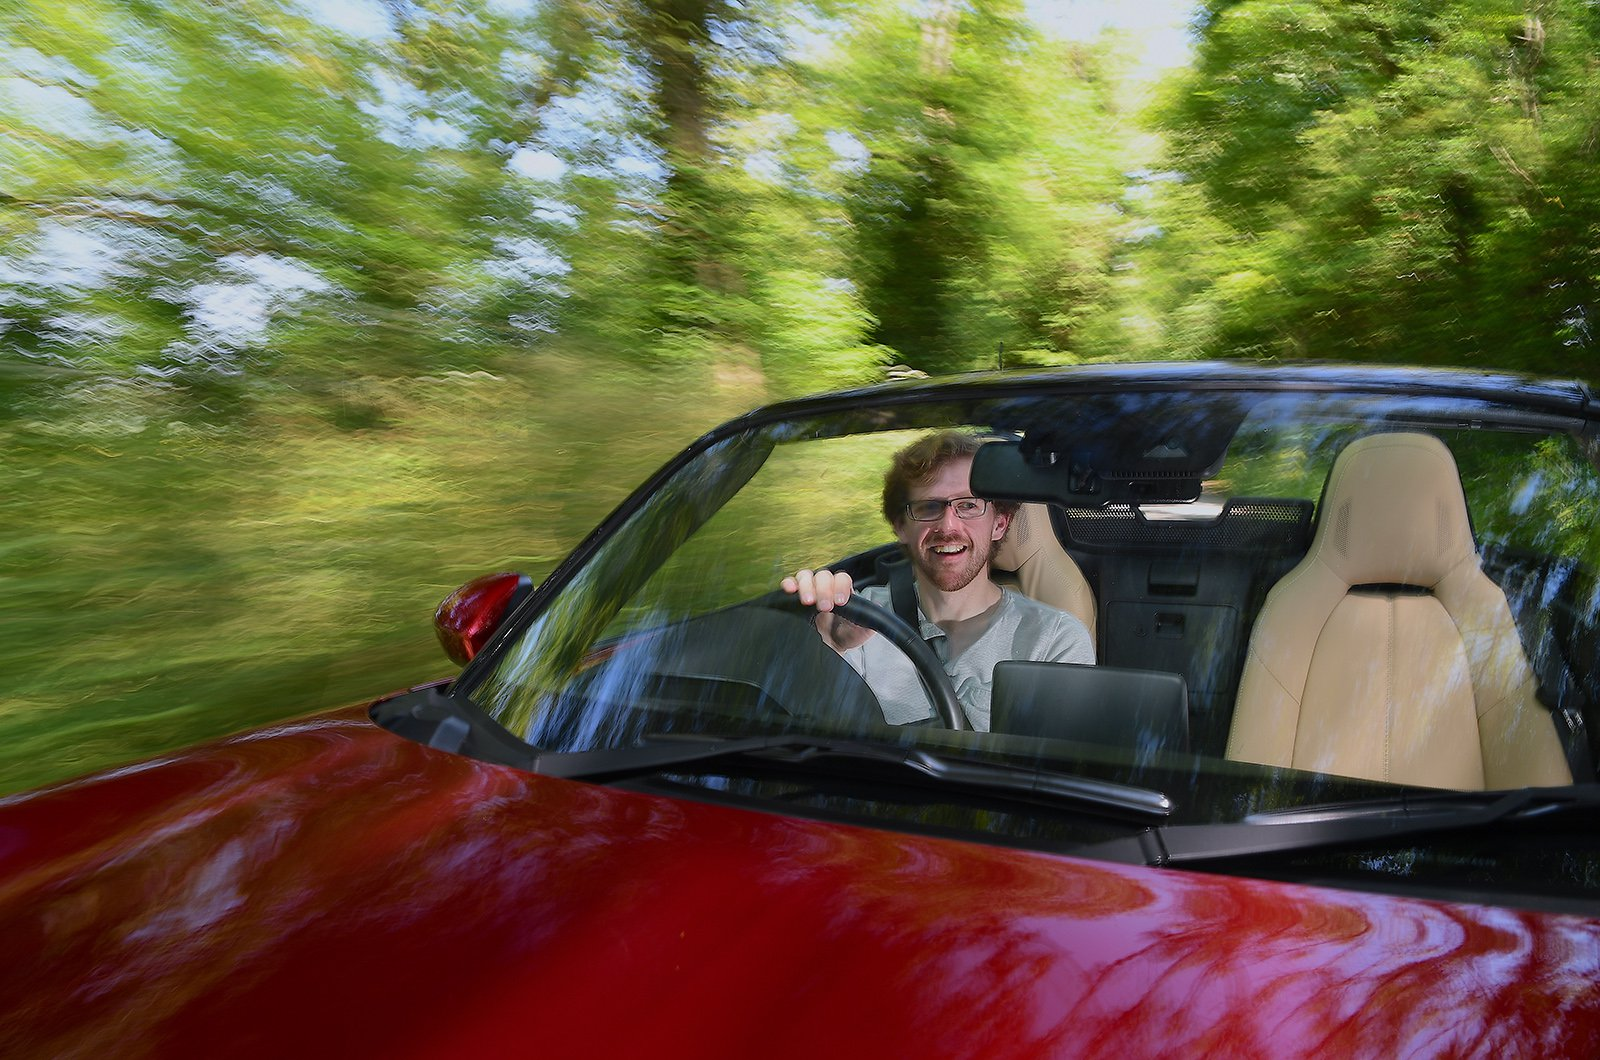 Used Mazda MX-5 with an idiot behind the wheel